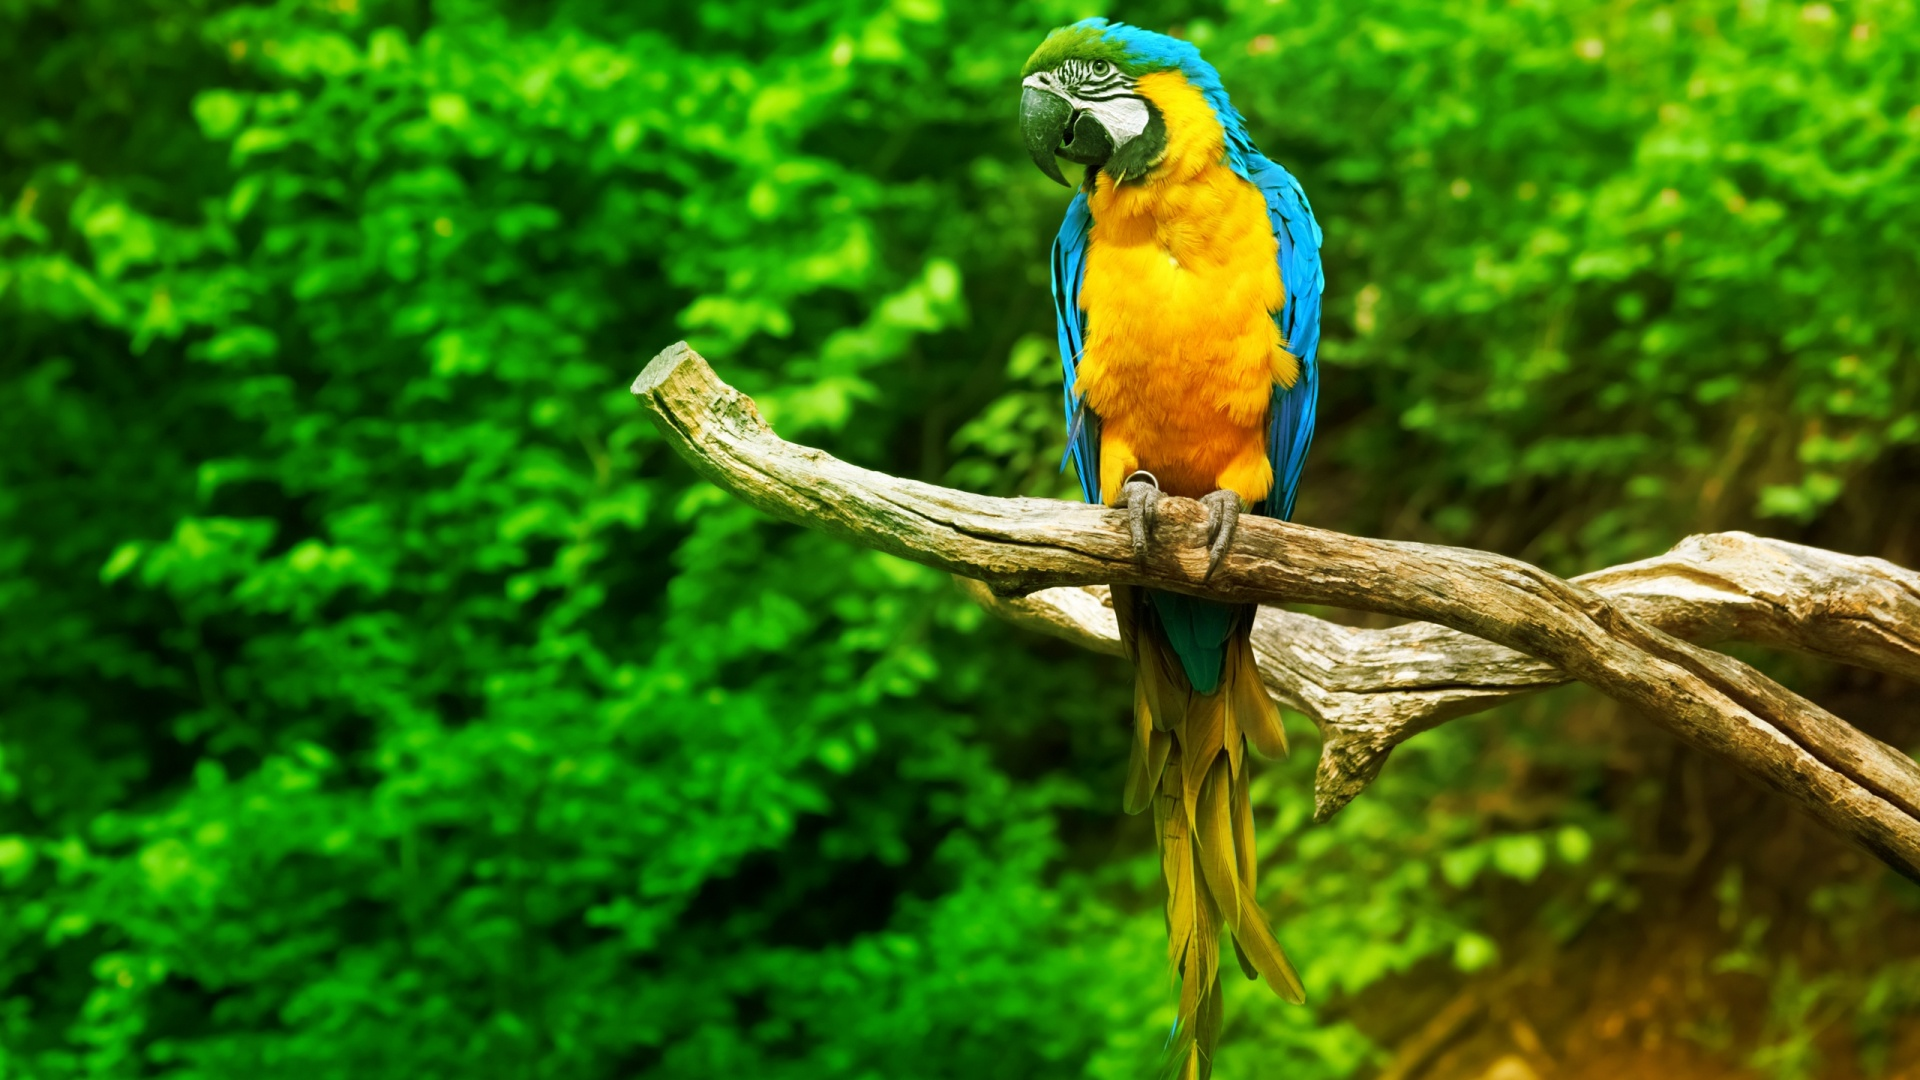 Beautiful-Parrot-1920-x-1080-wallpaper-wpc5802673